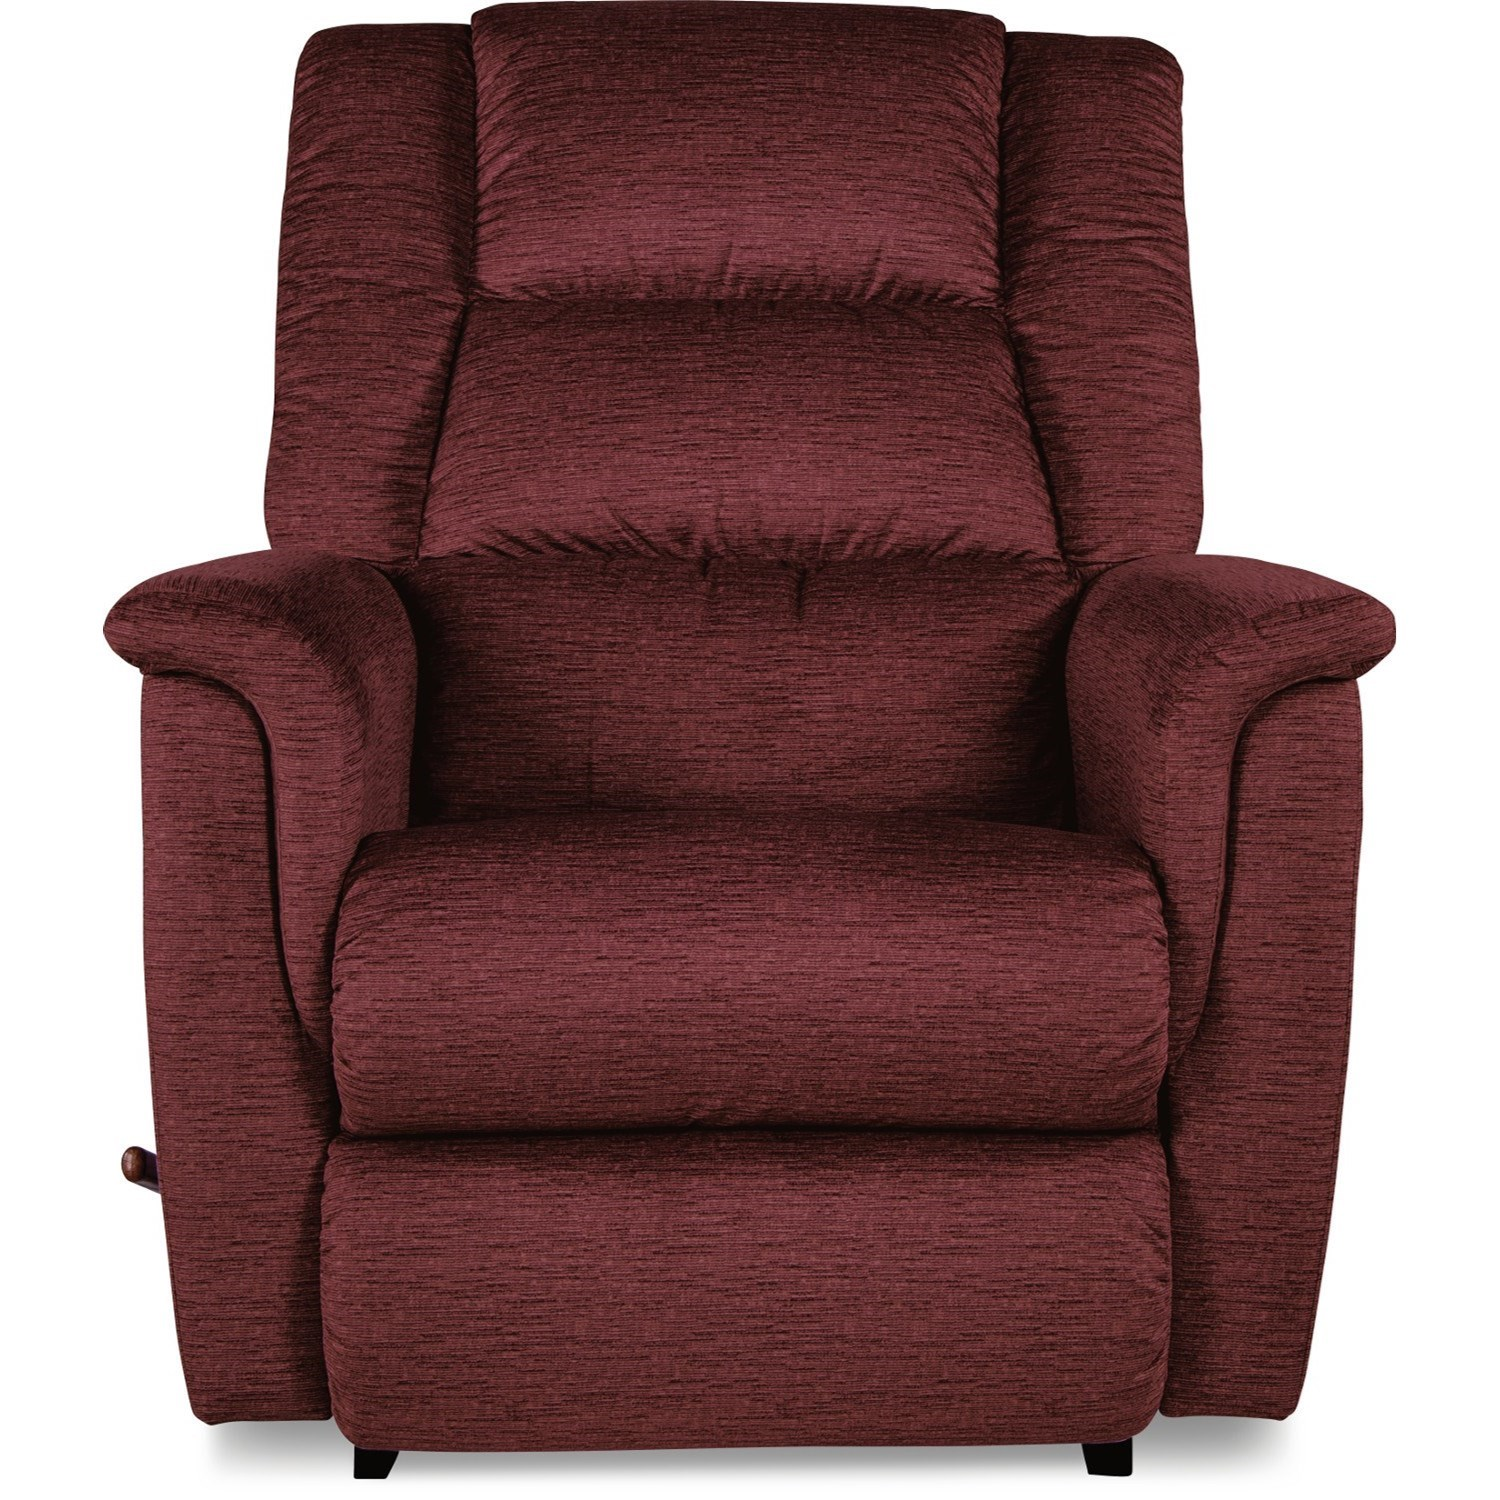 Murray Power Rocker Recliner by La-Z-Boy at Fisher Home Furnishings